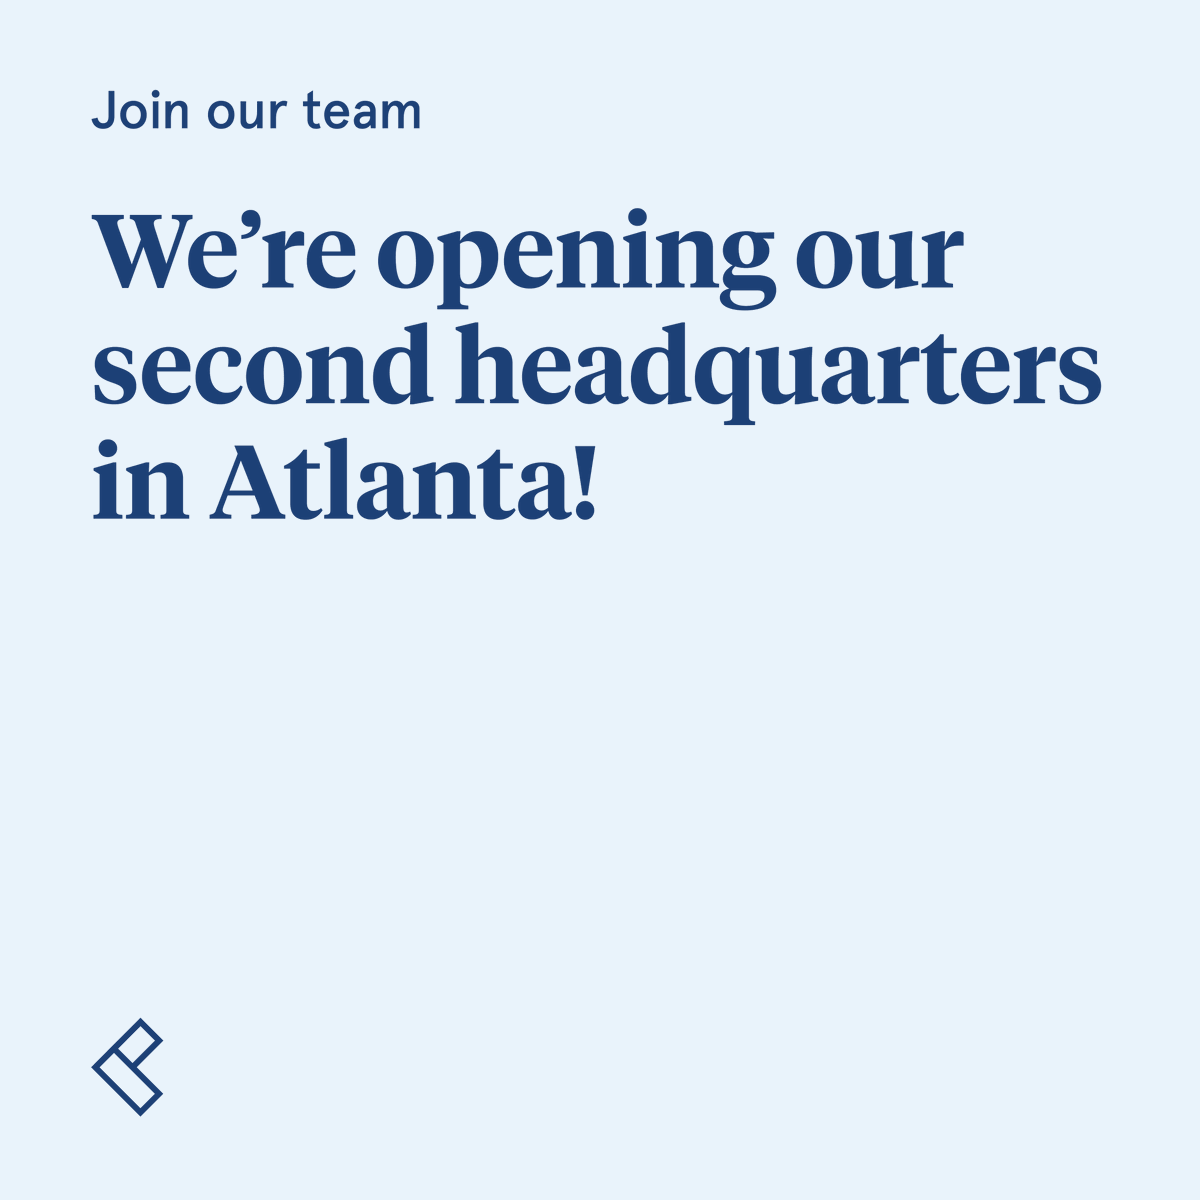 Were proud to be opening our second headquarters in Atlanta, a city we love for its vibrant community and history of innovation. If you call Atlanta home and want to work for Common, were hiring! Head to our Careers page to explore our open roles: bit.ly/38B8BSF